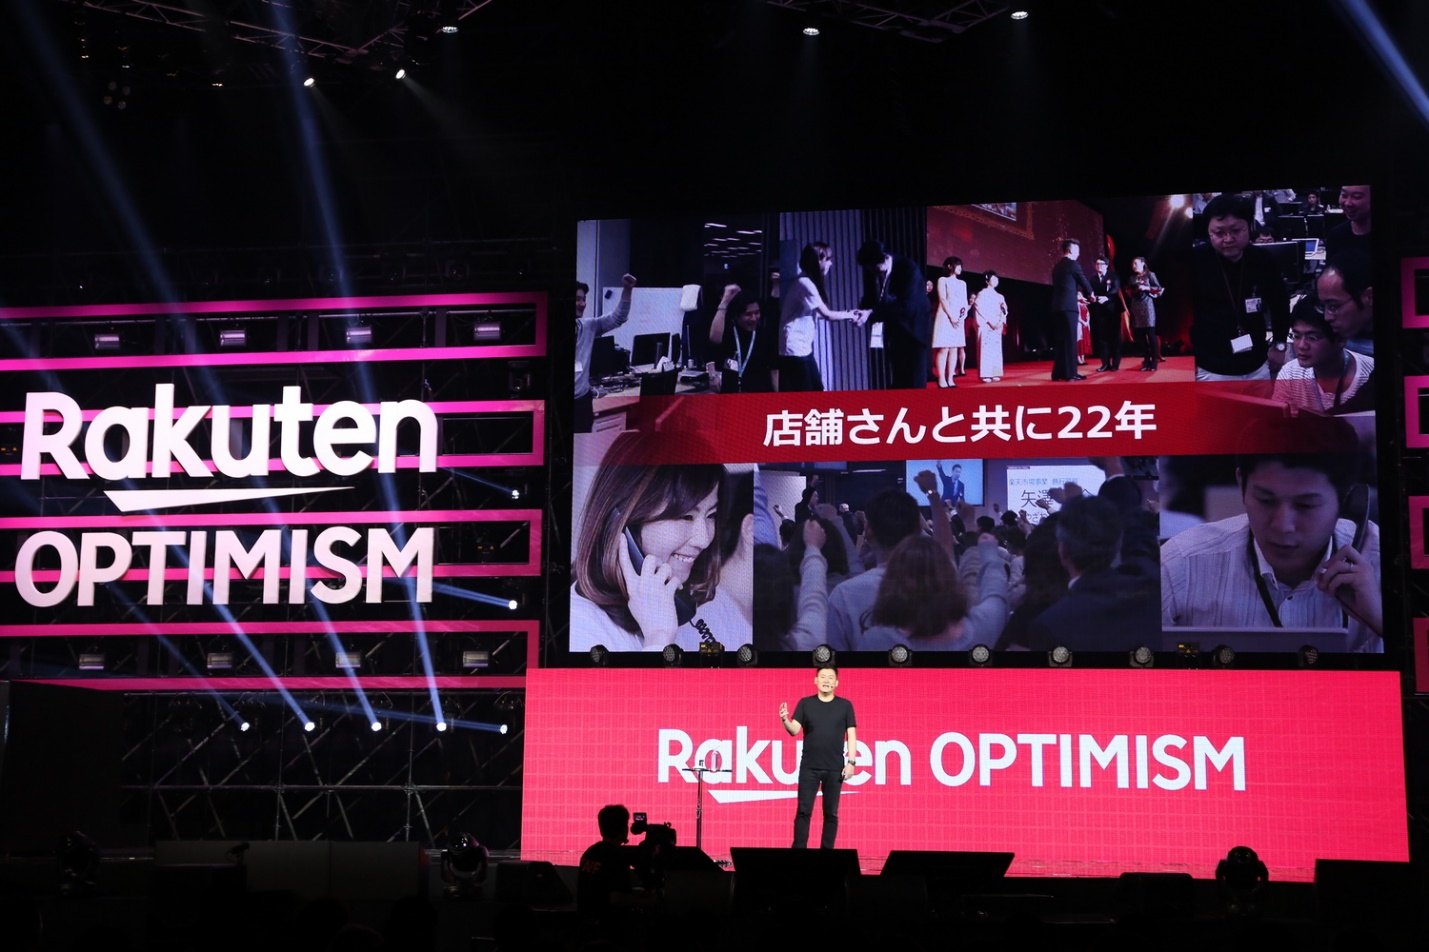 Rakuten CEO Mickey Mikitani spoke to merchants about the launch of Rakuten Mobile, the impact of 5G, and new initiatives in payments, logistics and fashion.